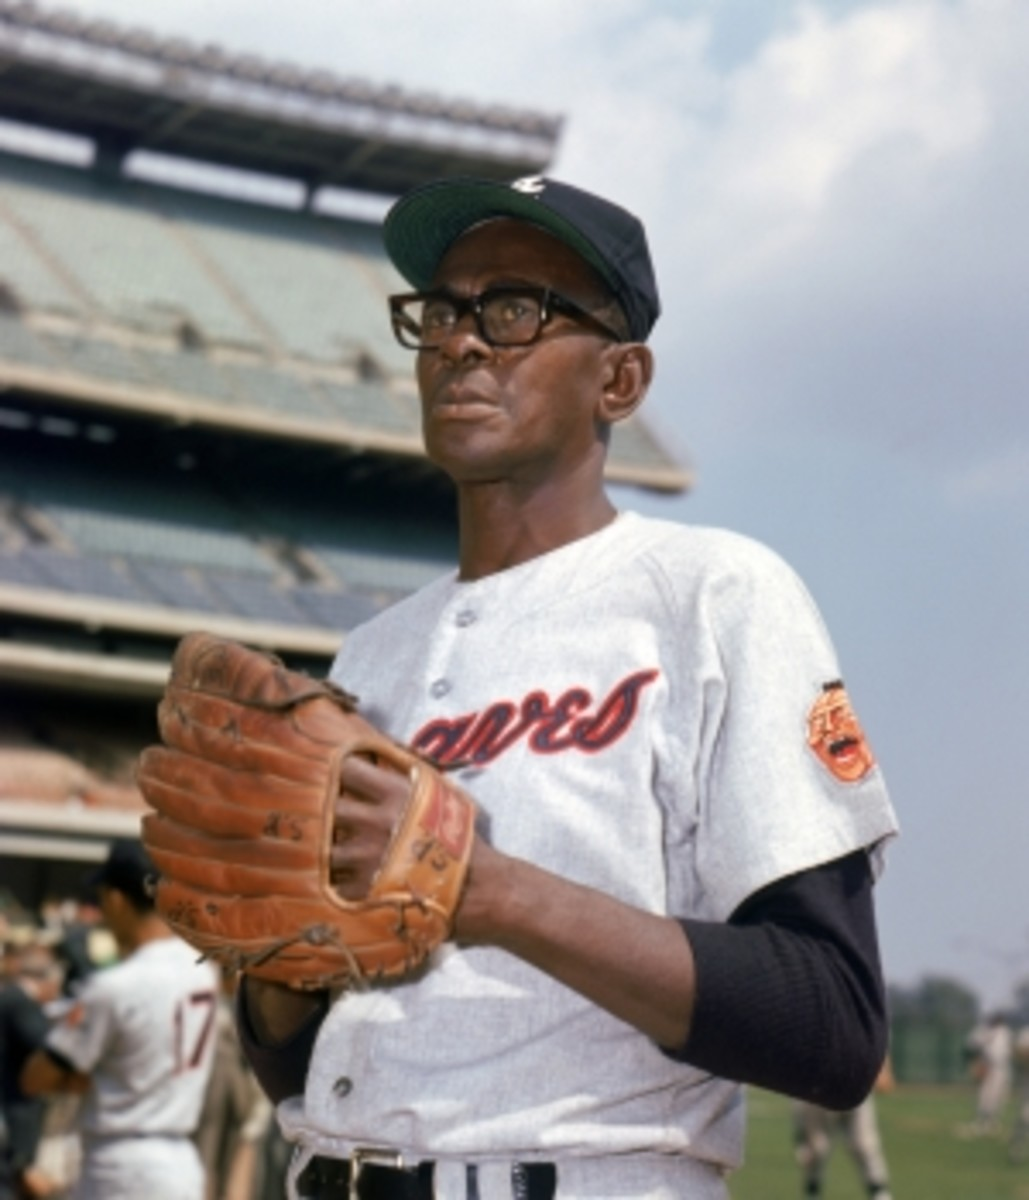 Satchel Paige of the Atlanta Braves circa 1968.